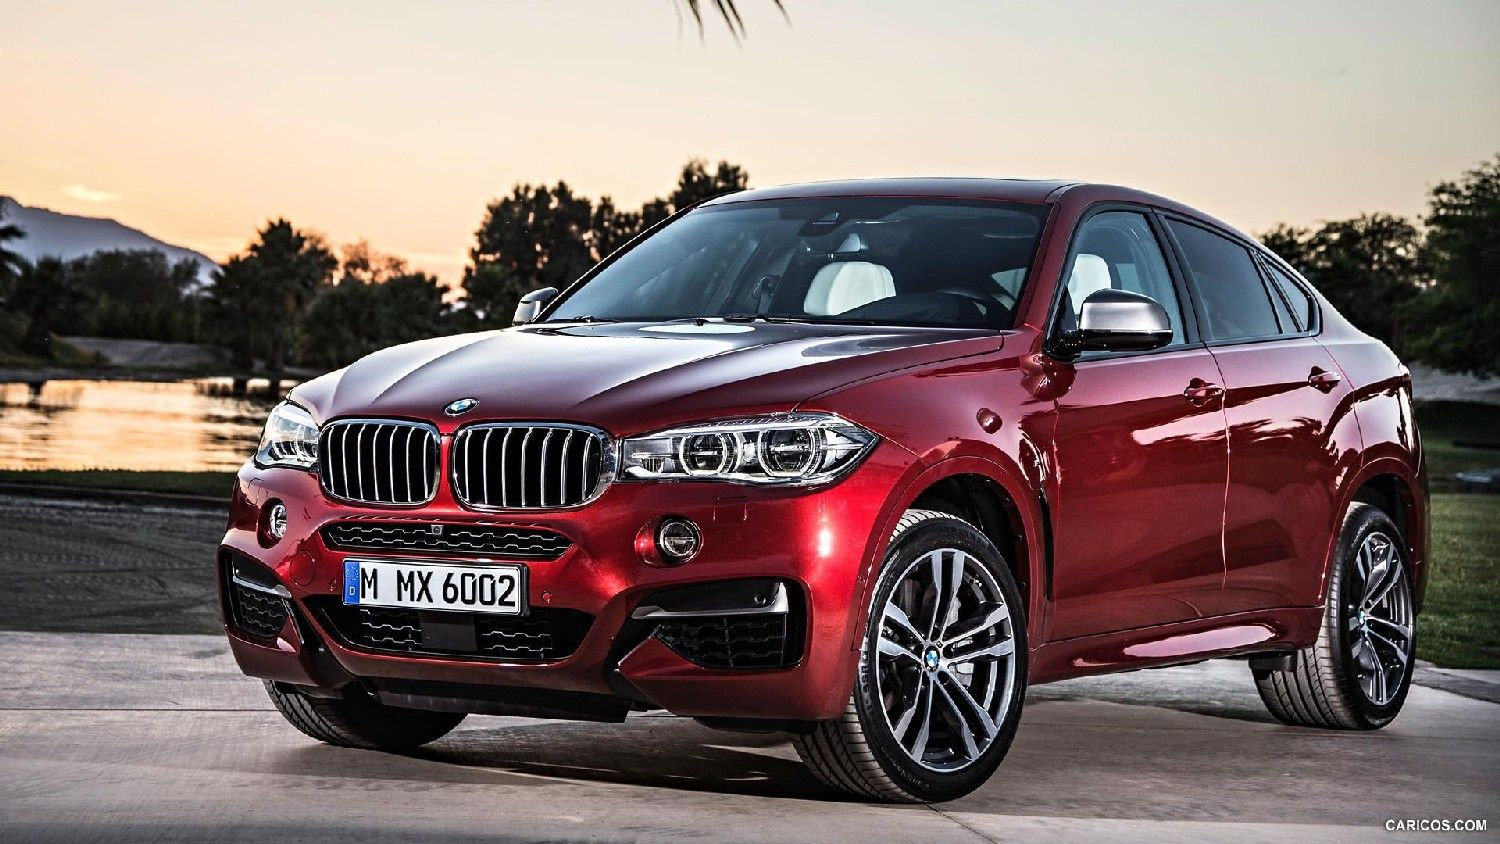 55 Top Awesome Luxury Red Cars Collections In 2020 Bmw Bmw Suv